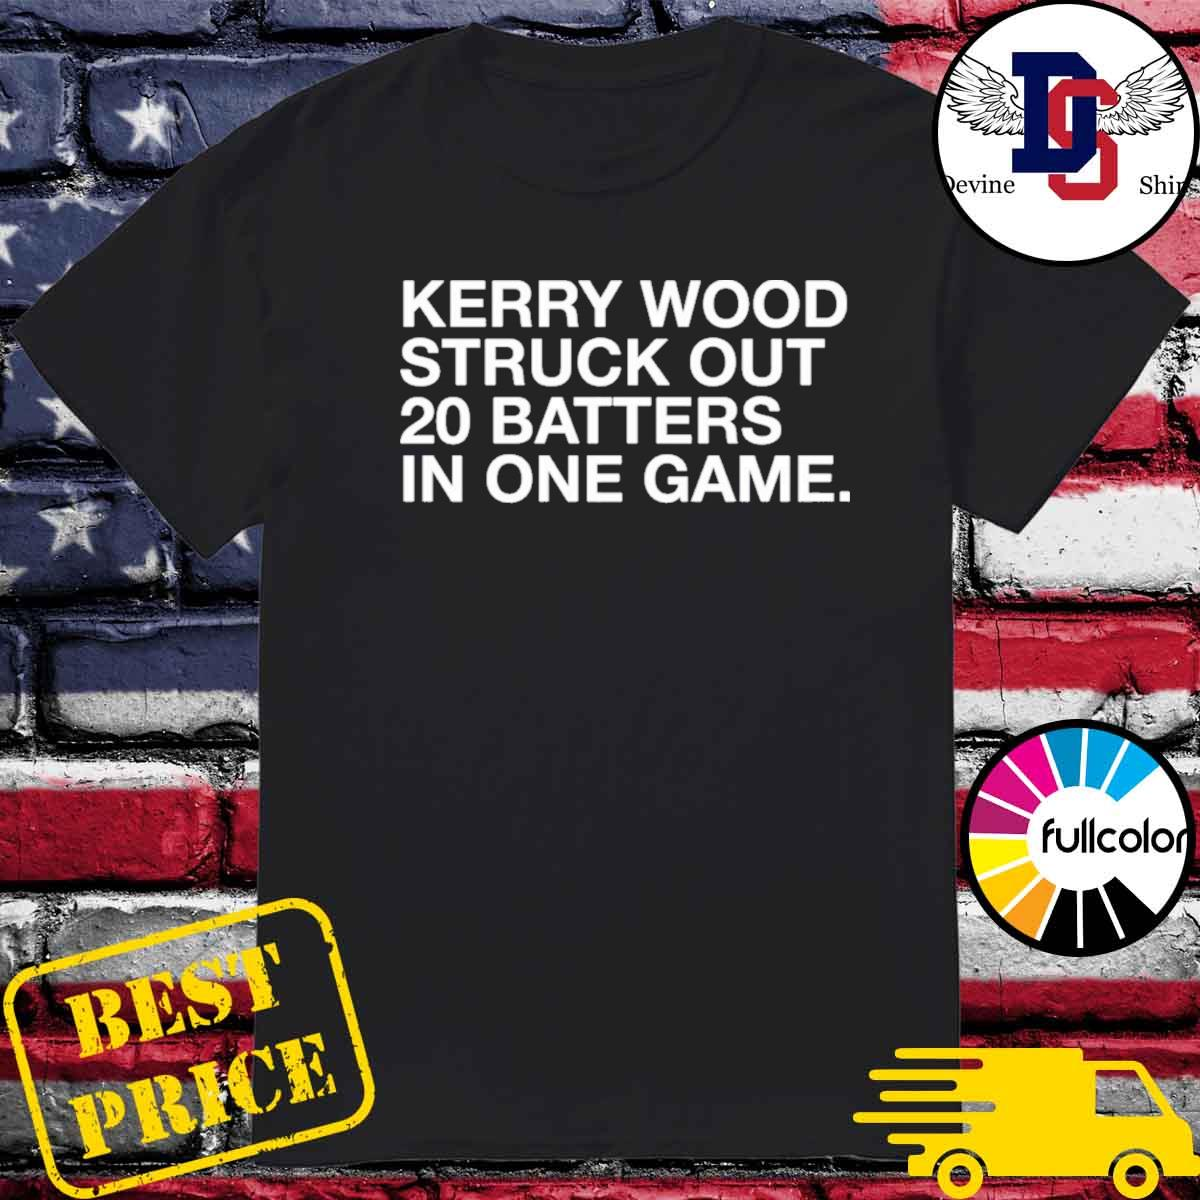 Kerry Wood Struck Out 20 Batters In One Game Shirt